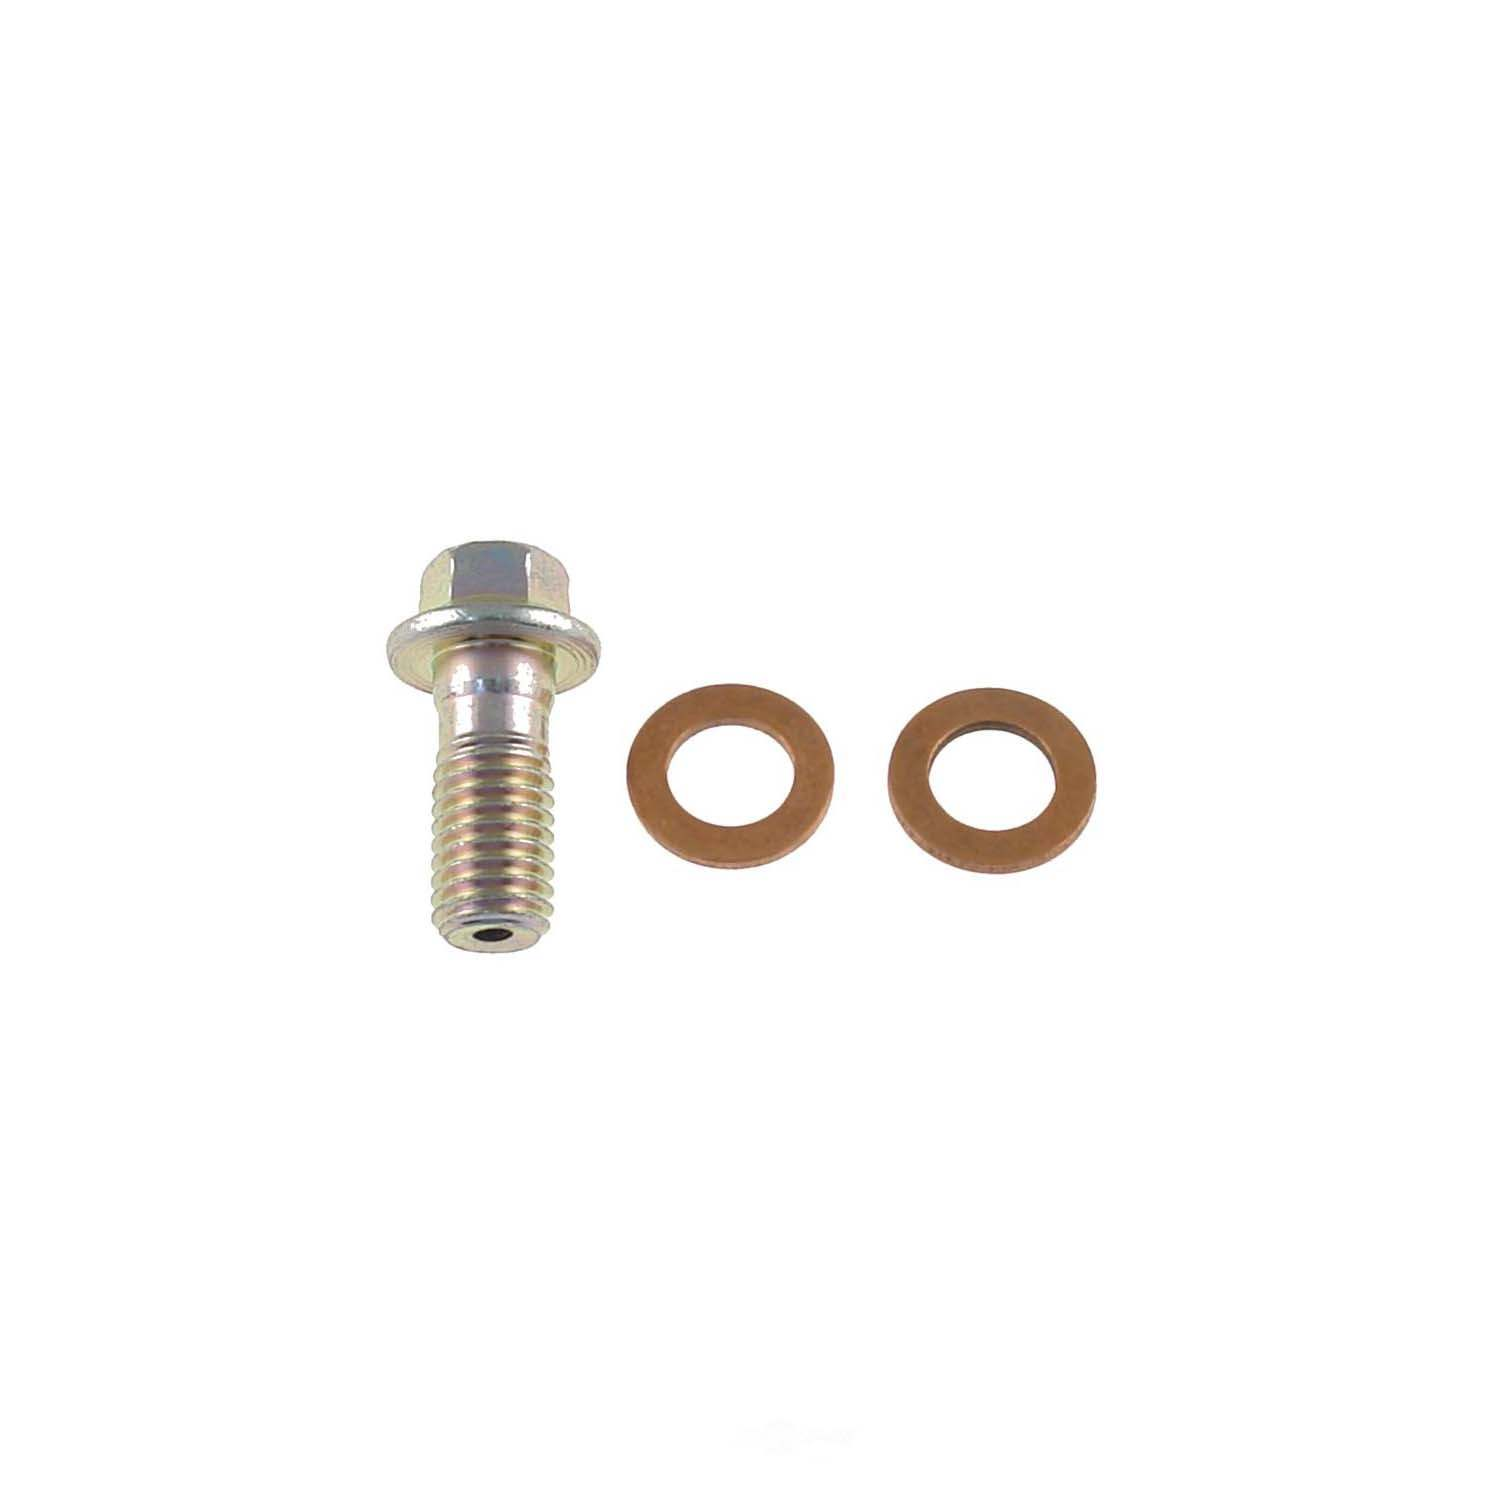 CARLSON QUALITY BRAKE PARTS - Brake Hydraulic Banjo Bolt (Front) - CRL H9458-2